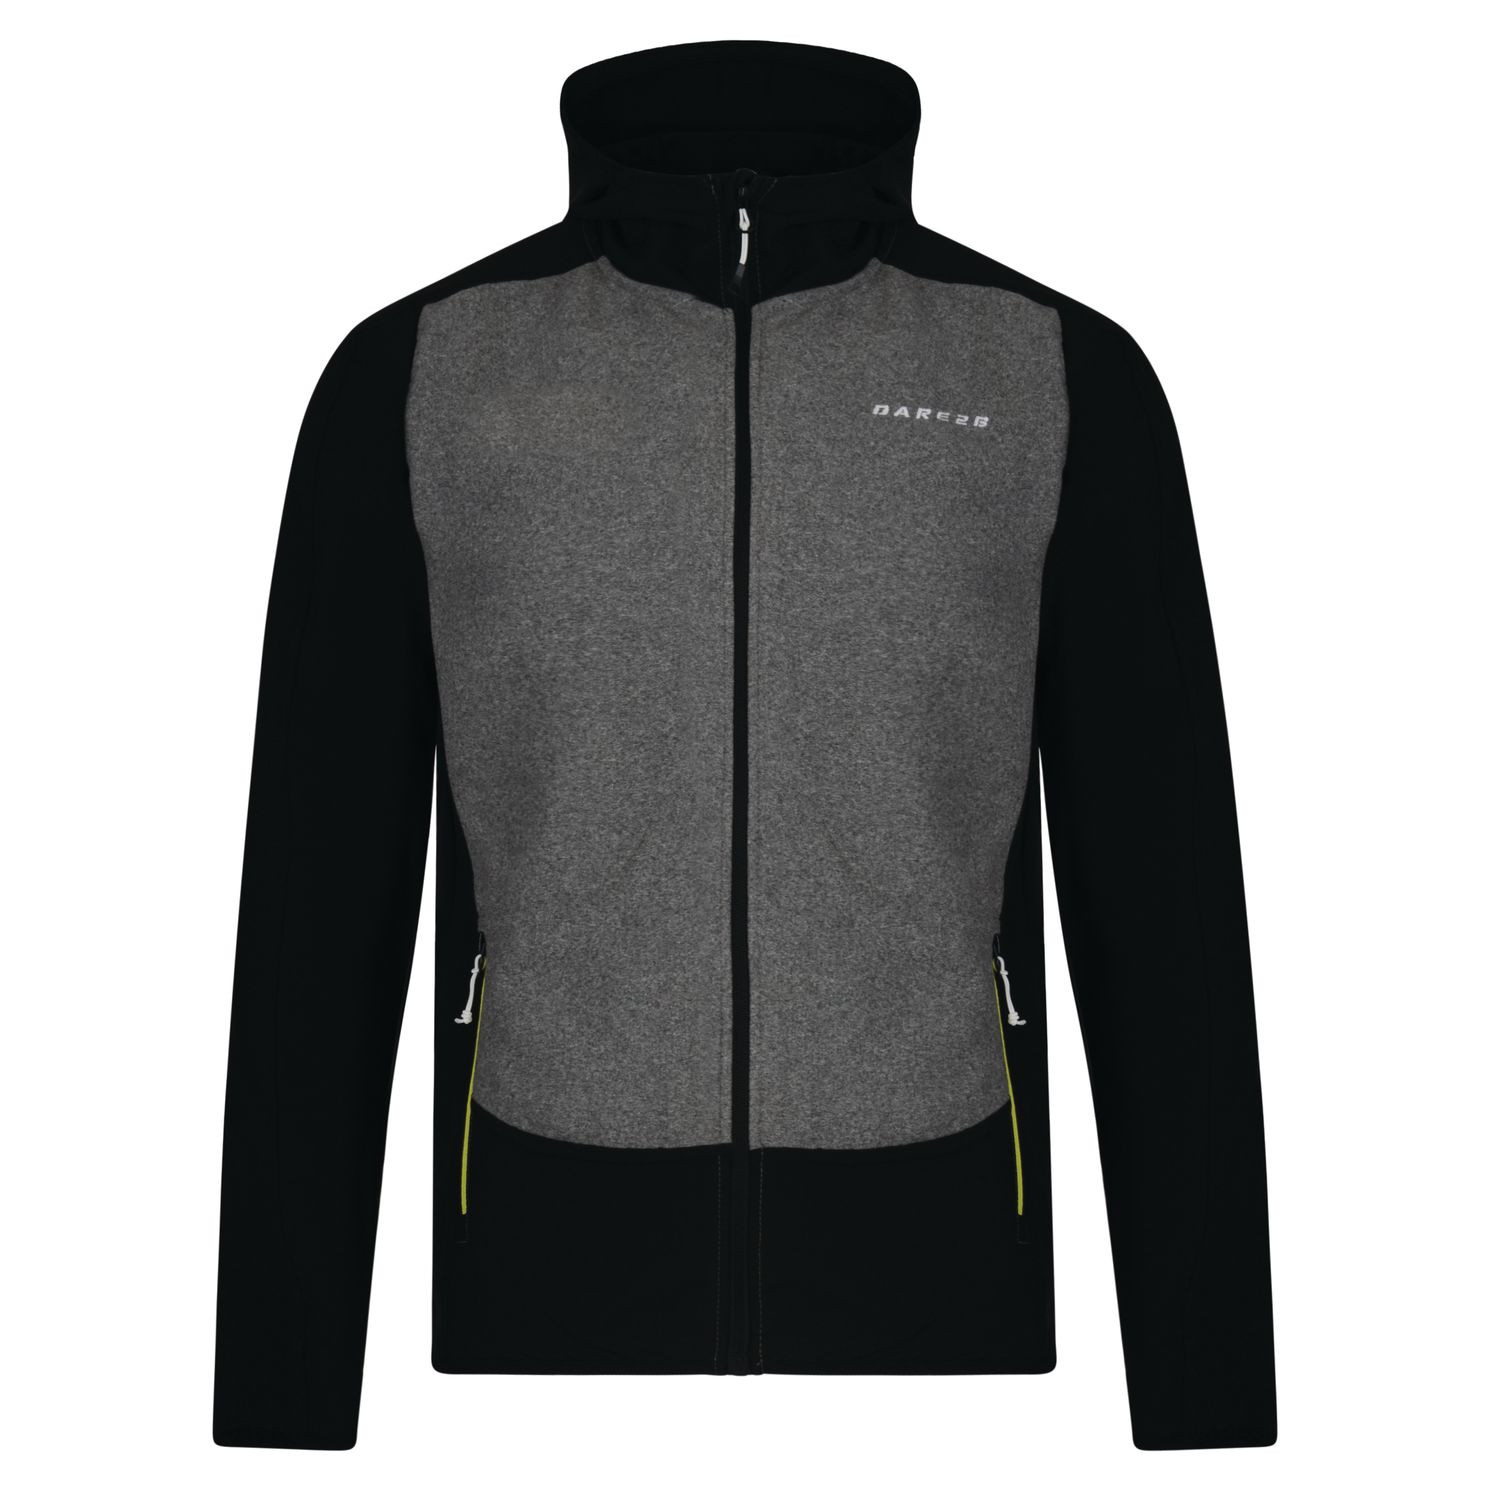 Veste Creed Softshell - Black Ash  1